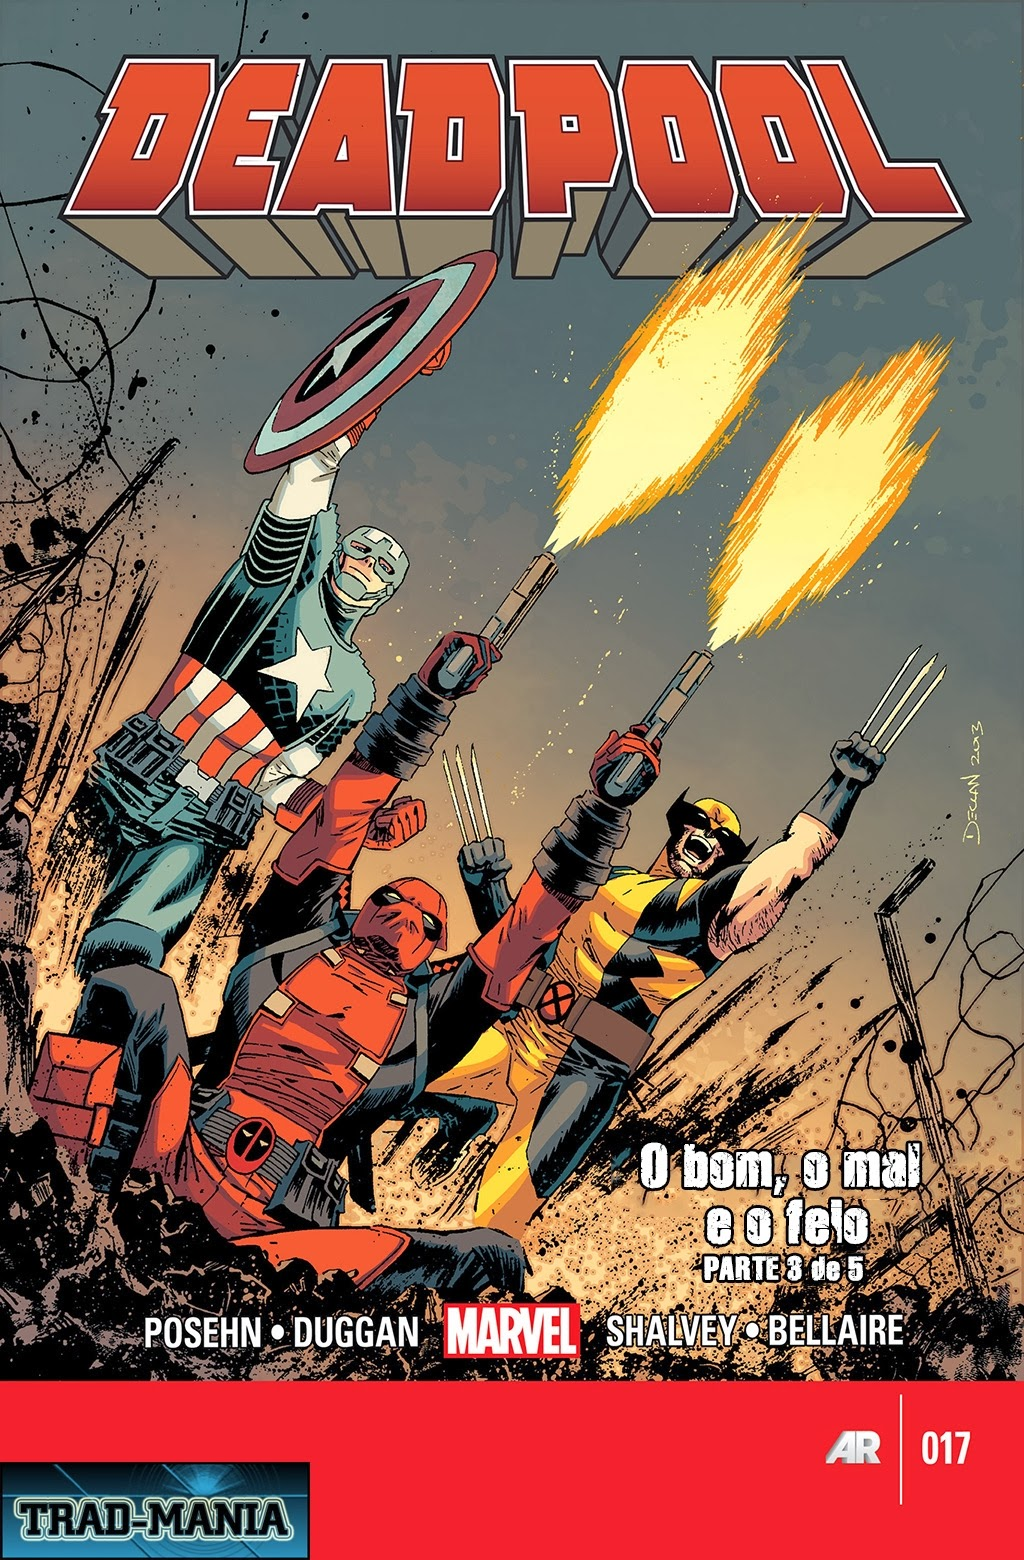 Nova Marvel! Deadpool v5 #17